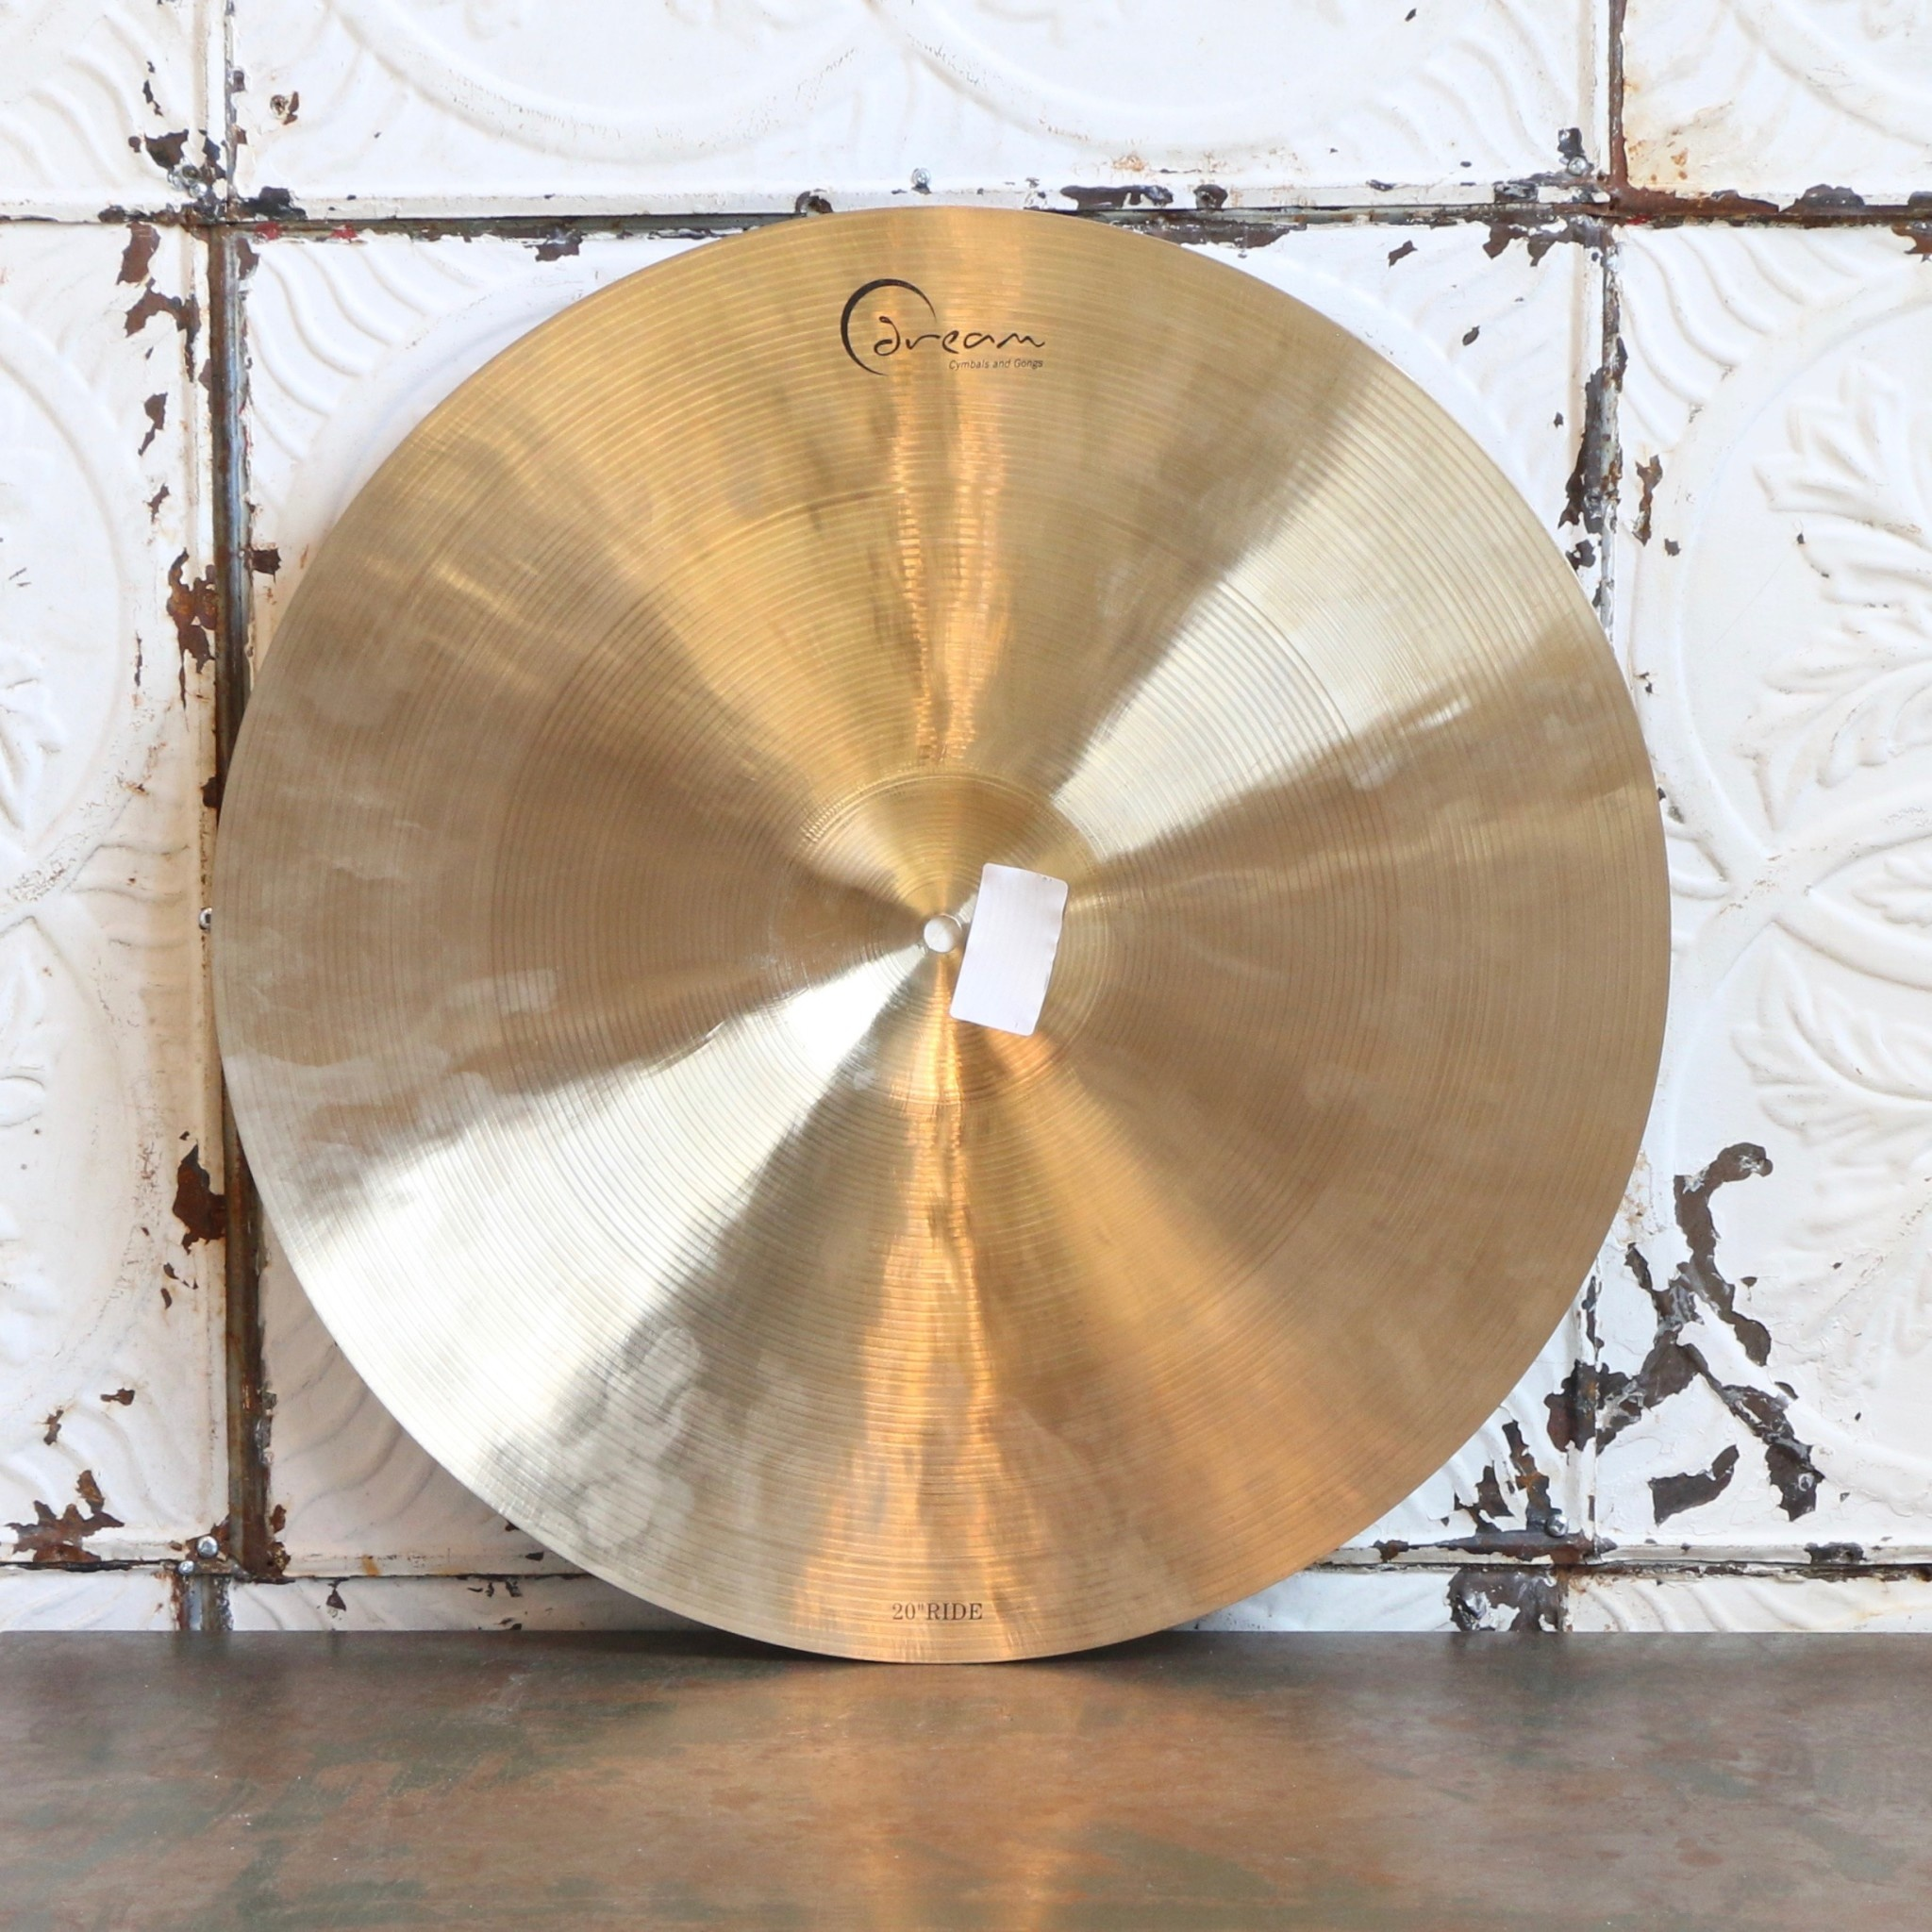 Dream Used (Jazz Fest) Dream Contact Ride Cymbal 20in